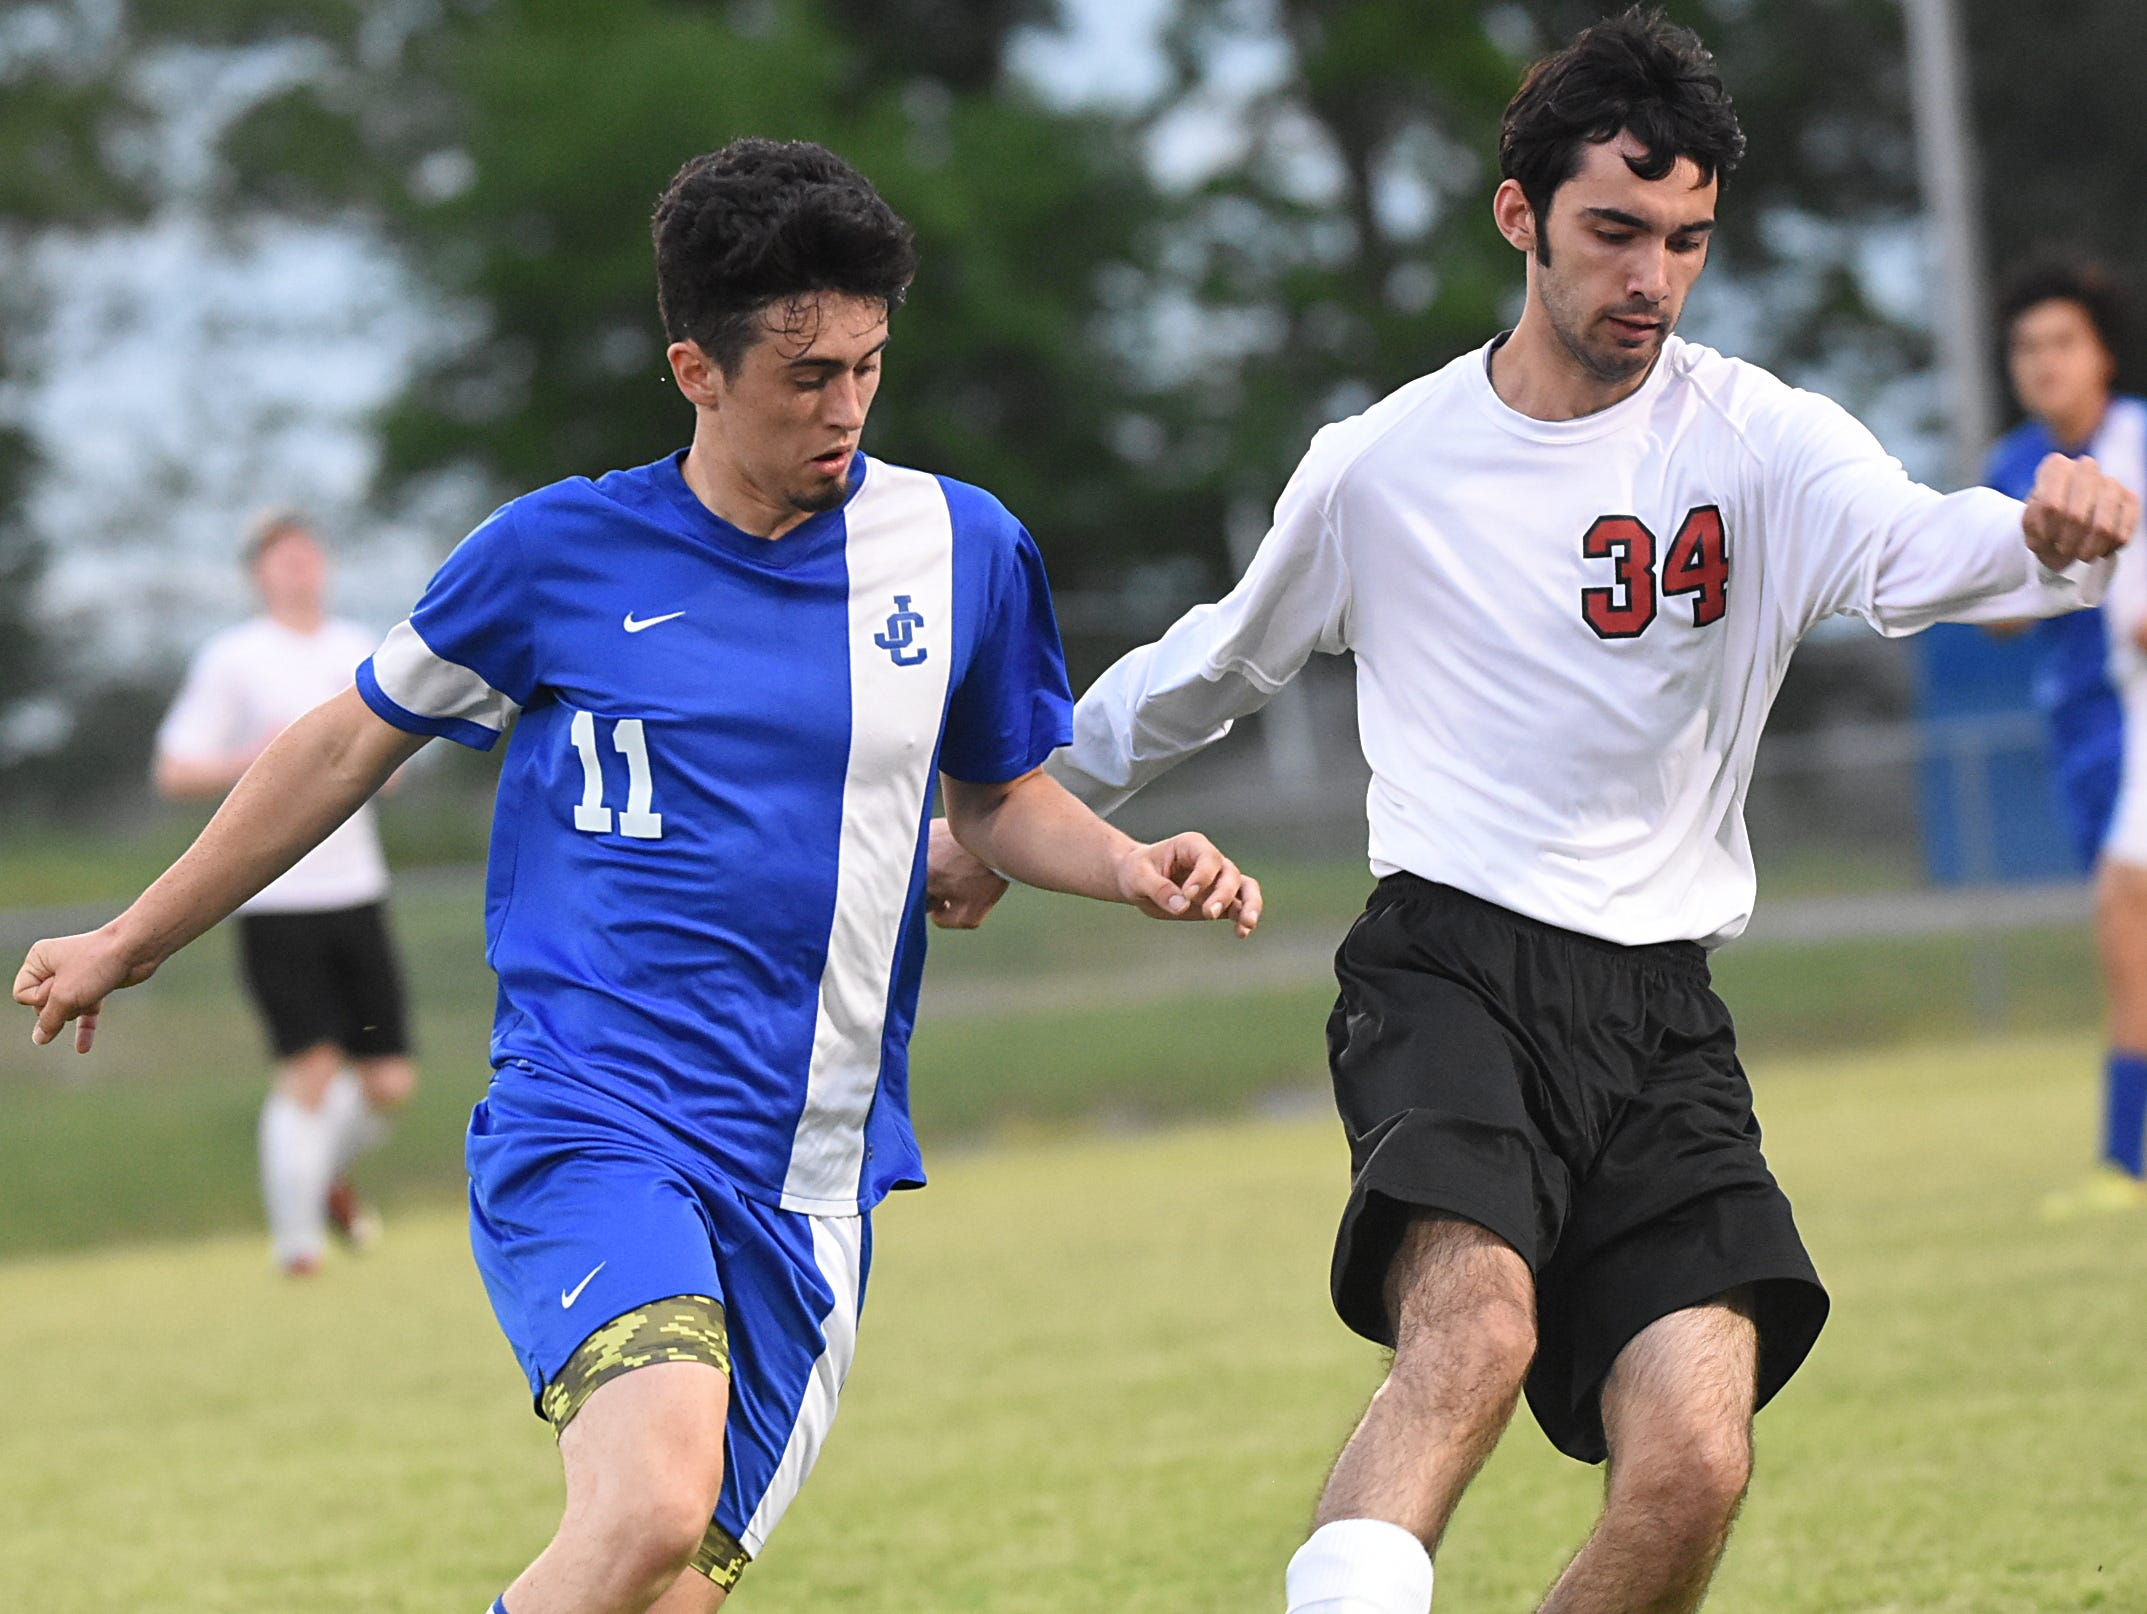 Westmoreland High senior defender Landon Graves maintains possession during the second half amidst pressure from Jackson County senior Dylan Penley.